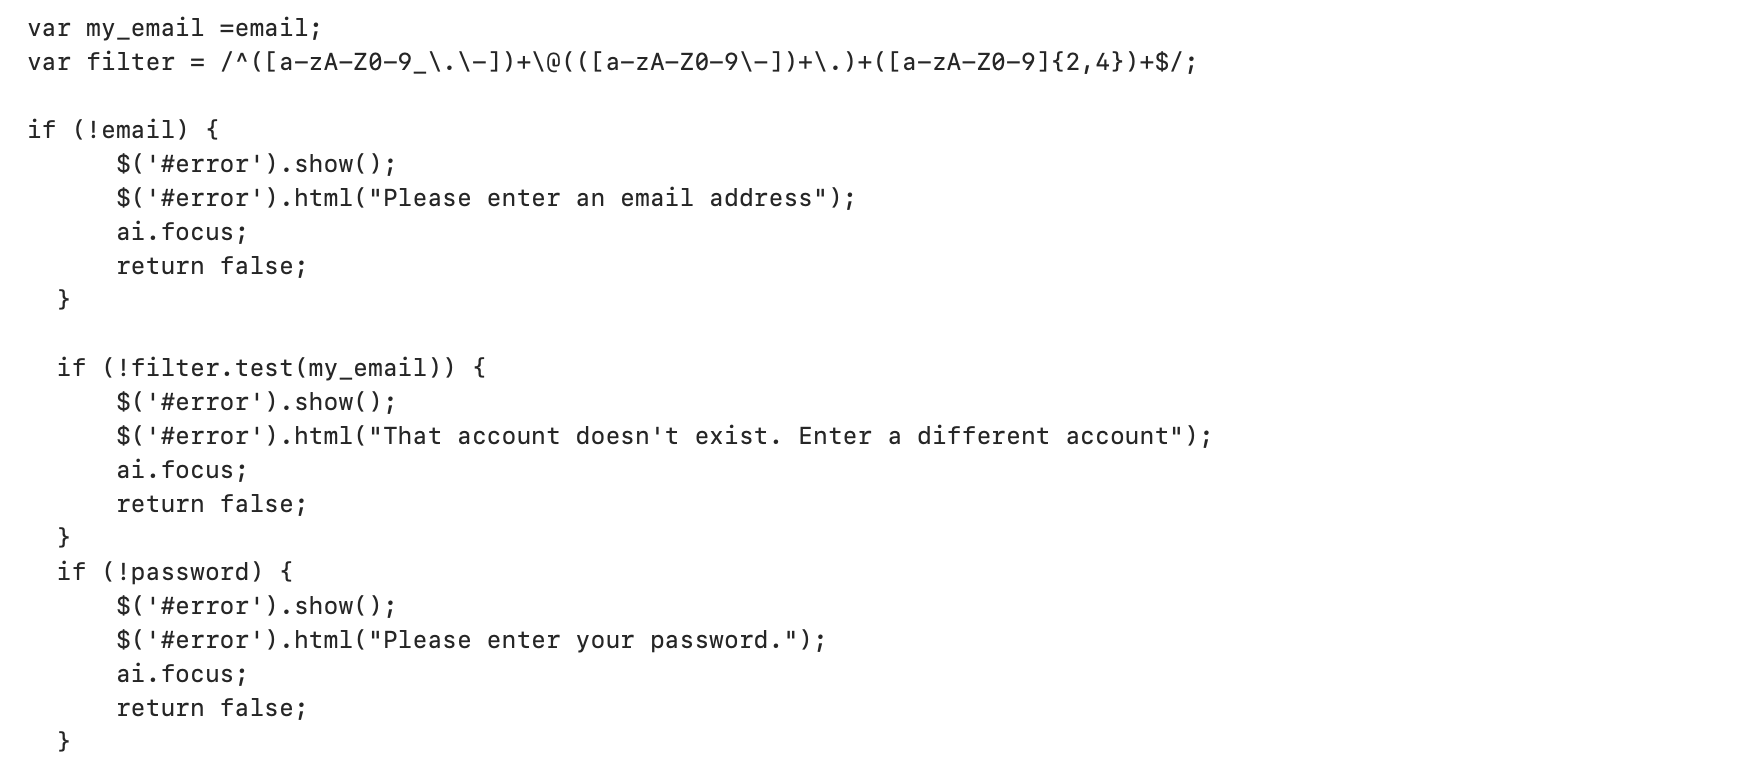 JavaScript such as that shown here can be used by attackers to validate credentials.